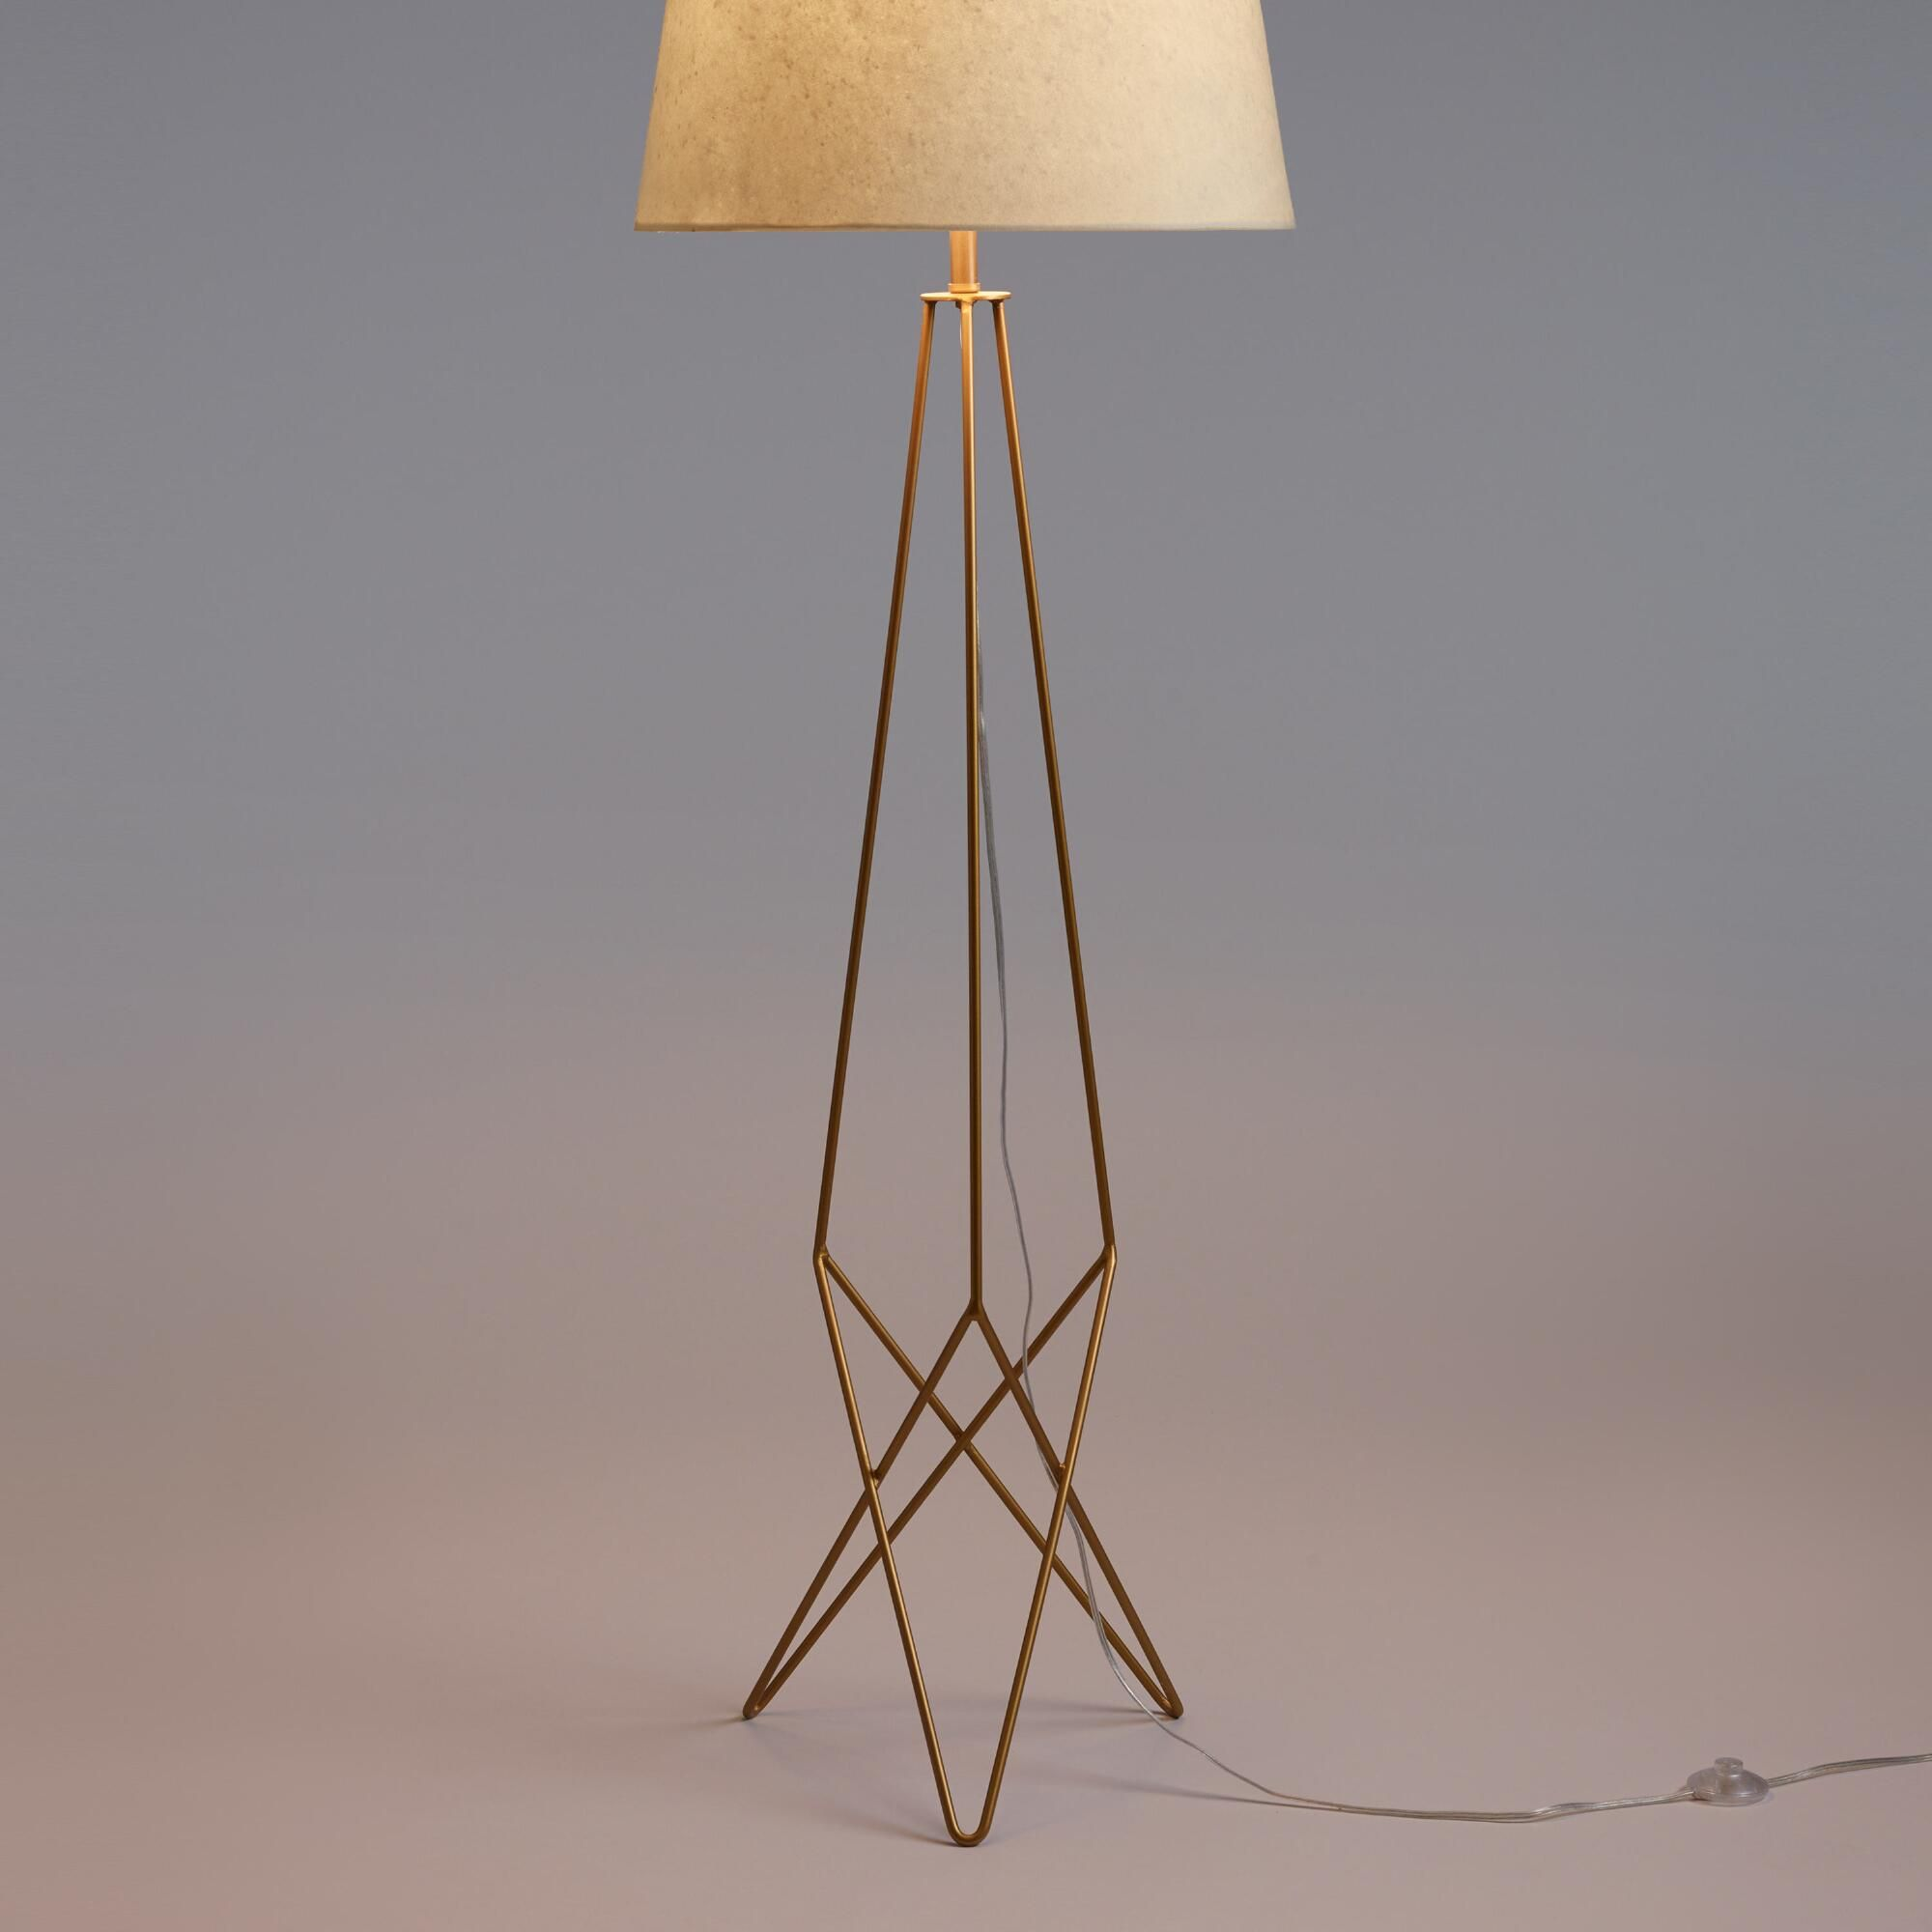 Make a mid century modern statement with our exclusive floor lamp in make a mid century modern statement with our exclusive floor lamp in resplendent antique gold aloadofball Choice Image